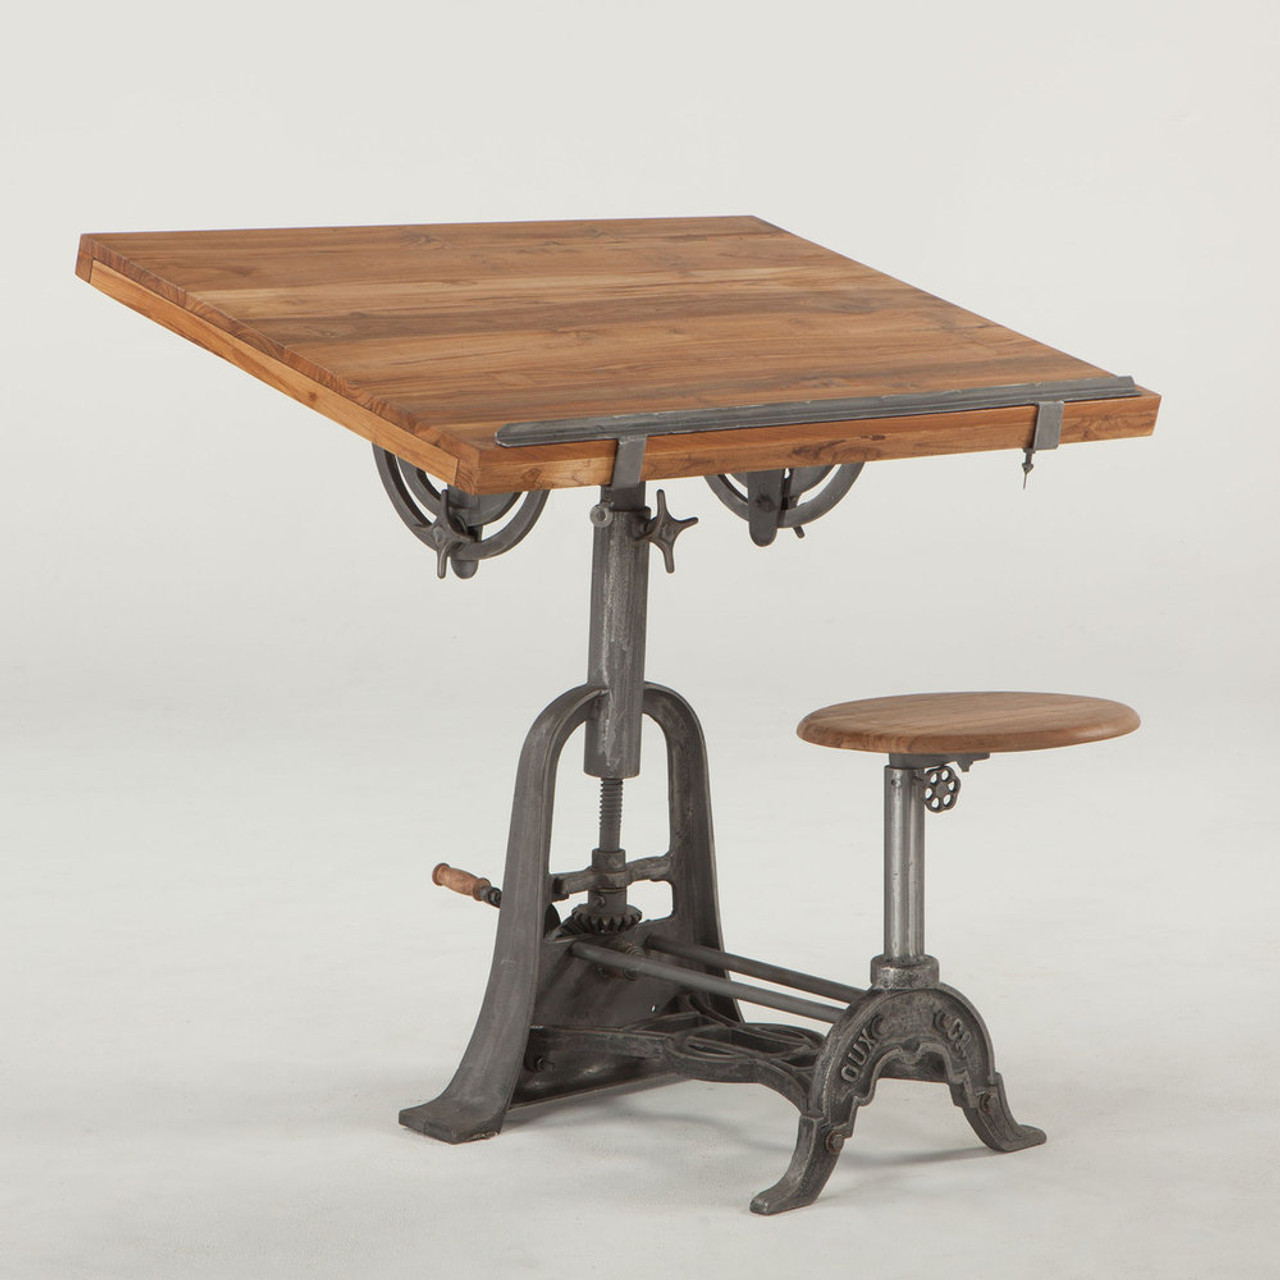 Wonderful French Vintage Industrial Architect Drafting Table With Attached Seat